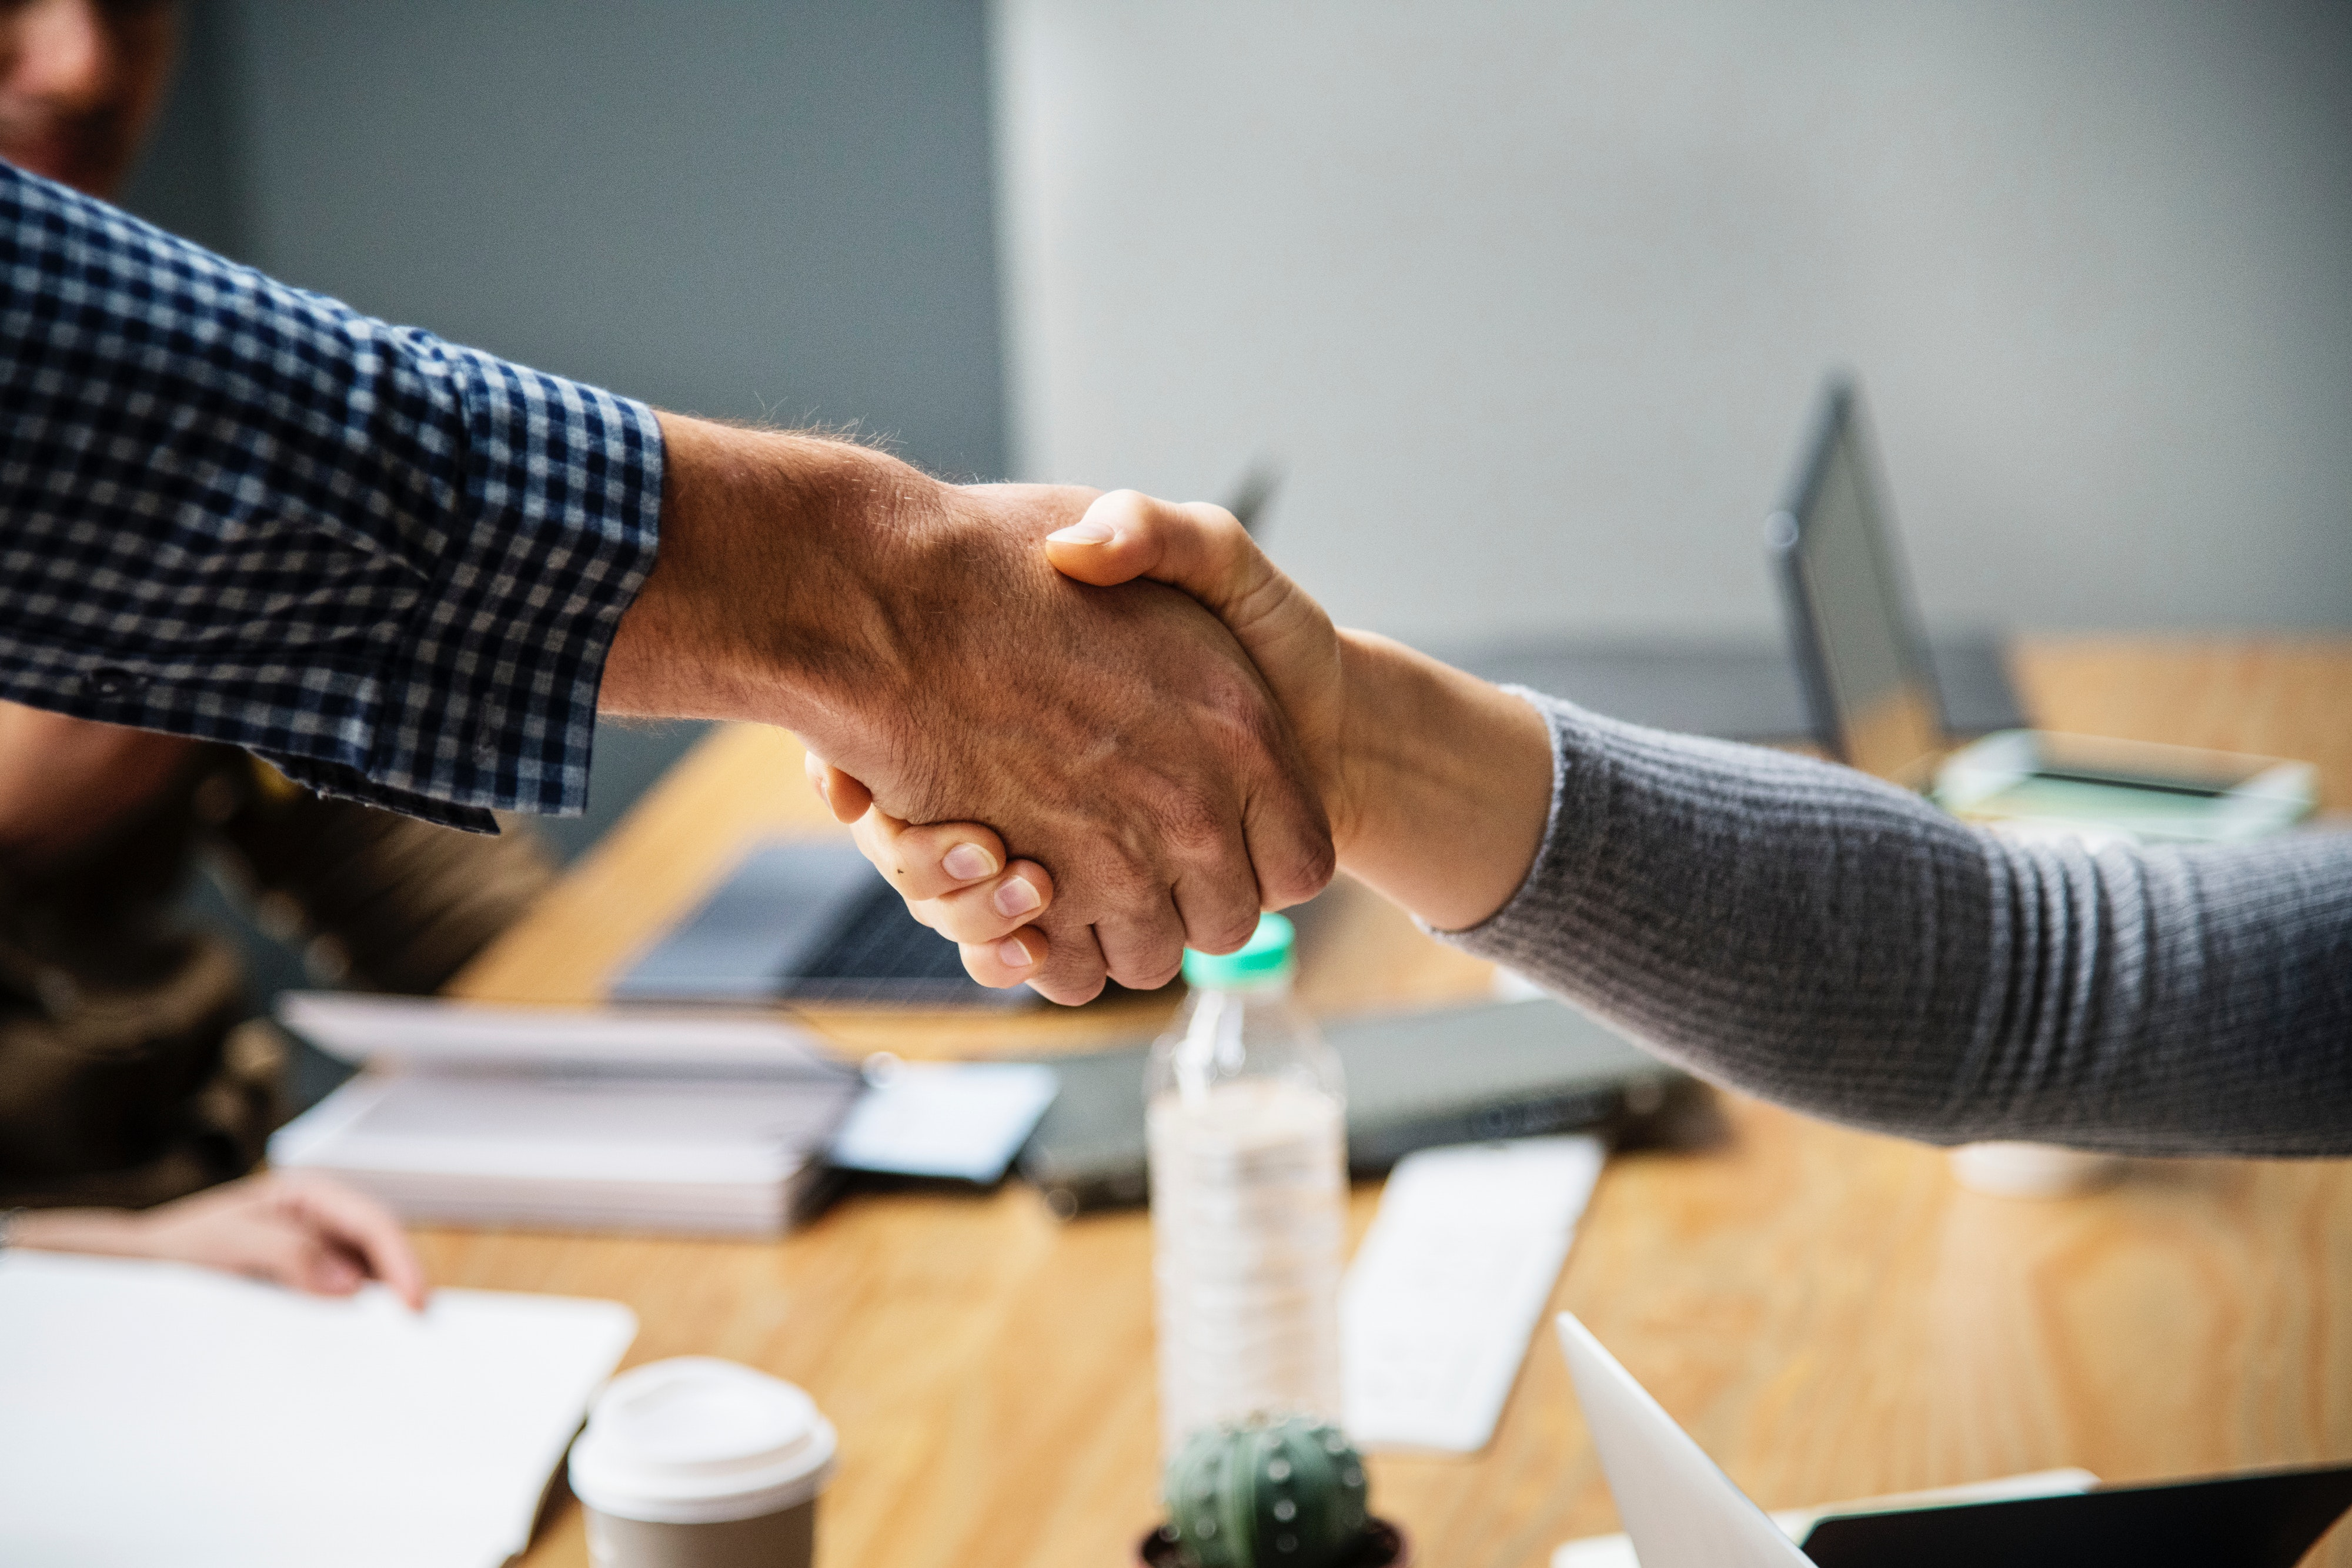 image of a man and woman shaking hands